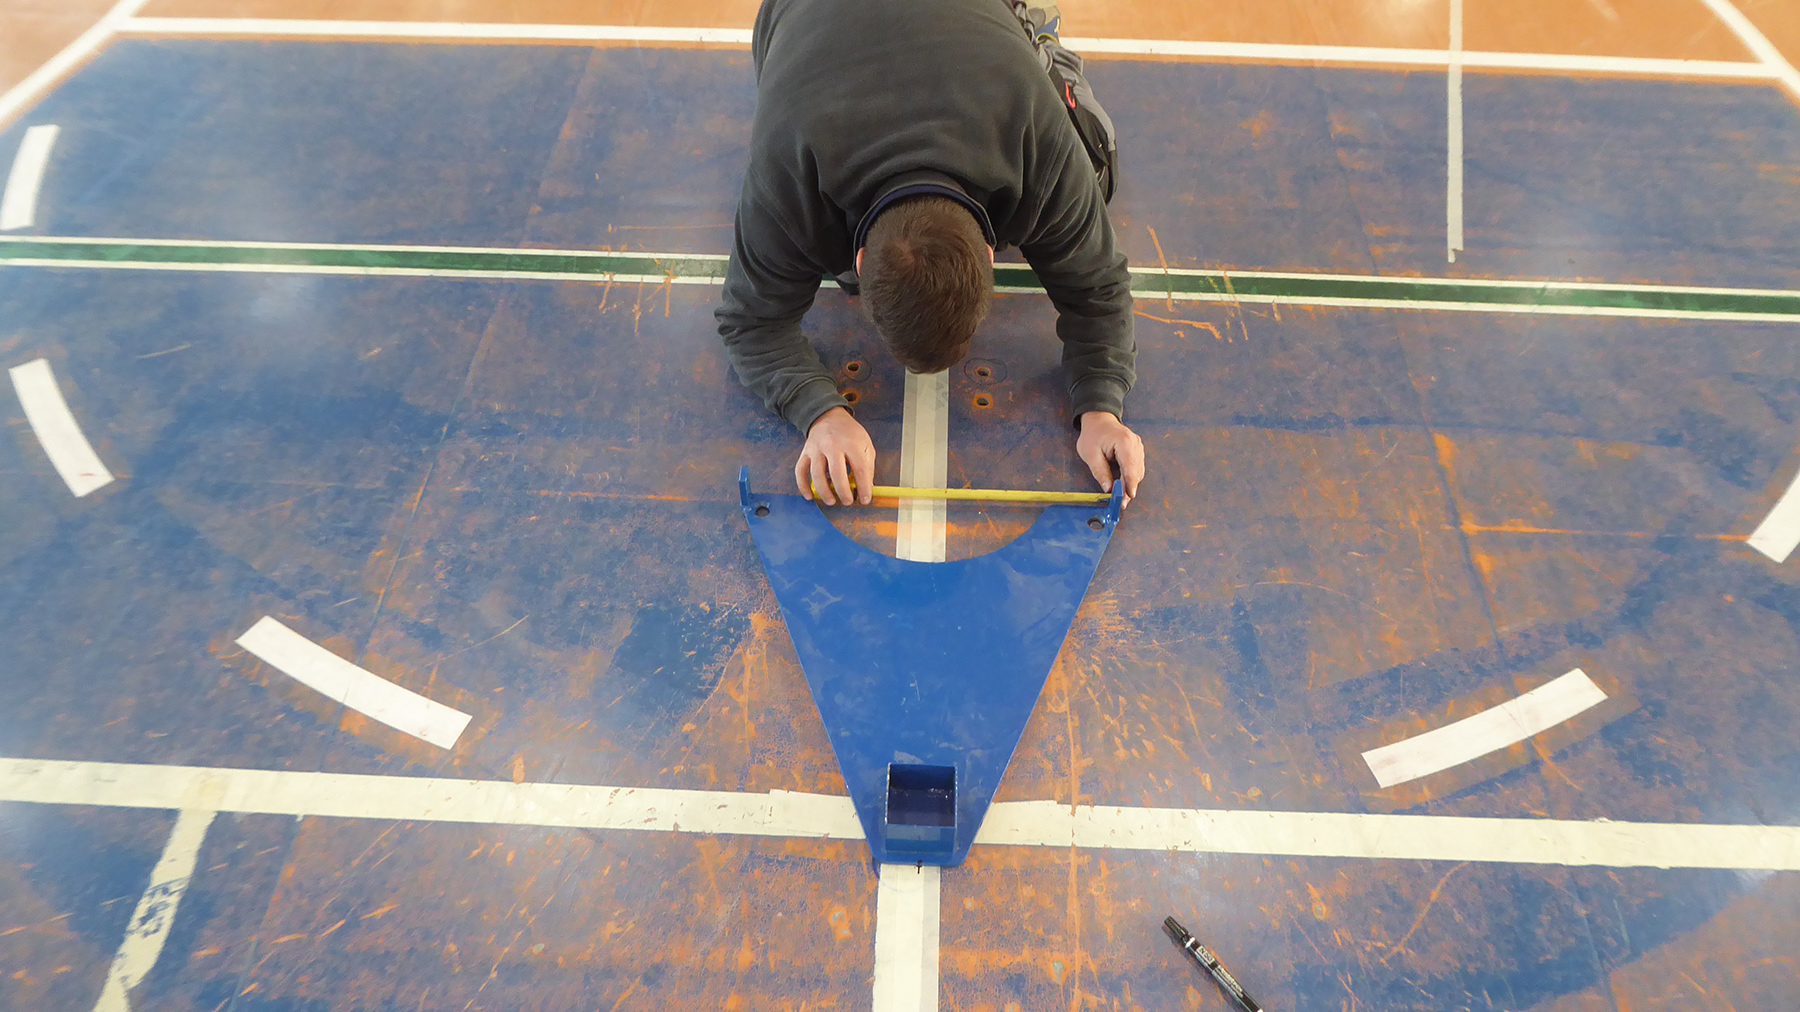 The care and precision to position the cross volley poles